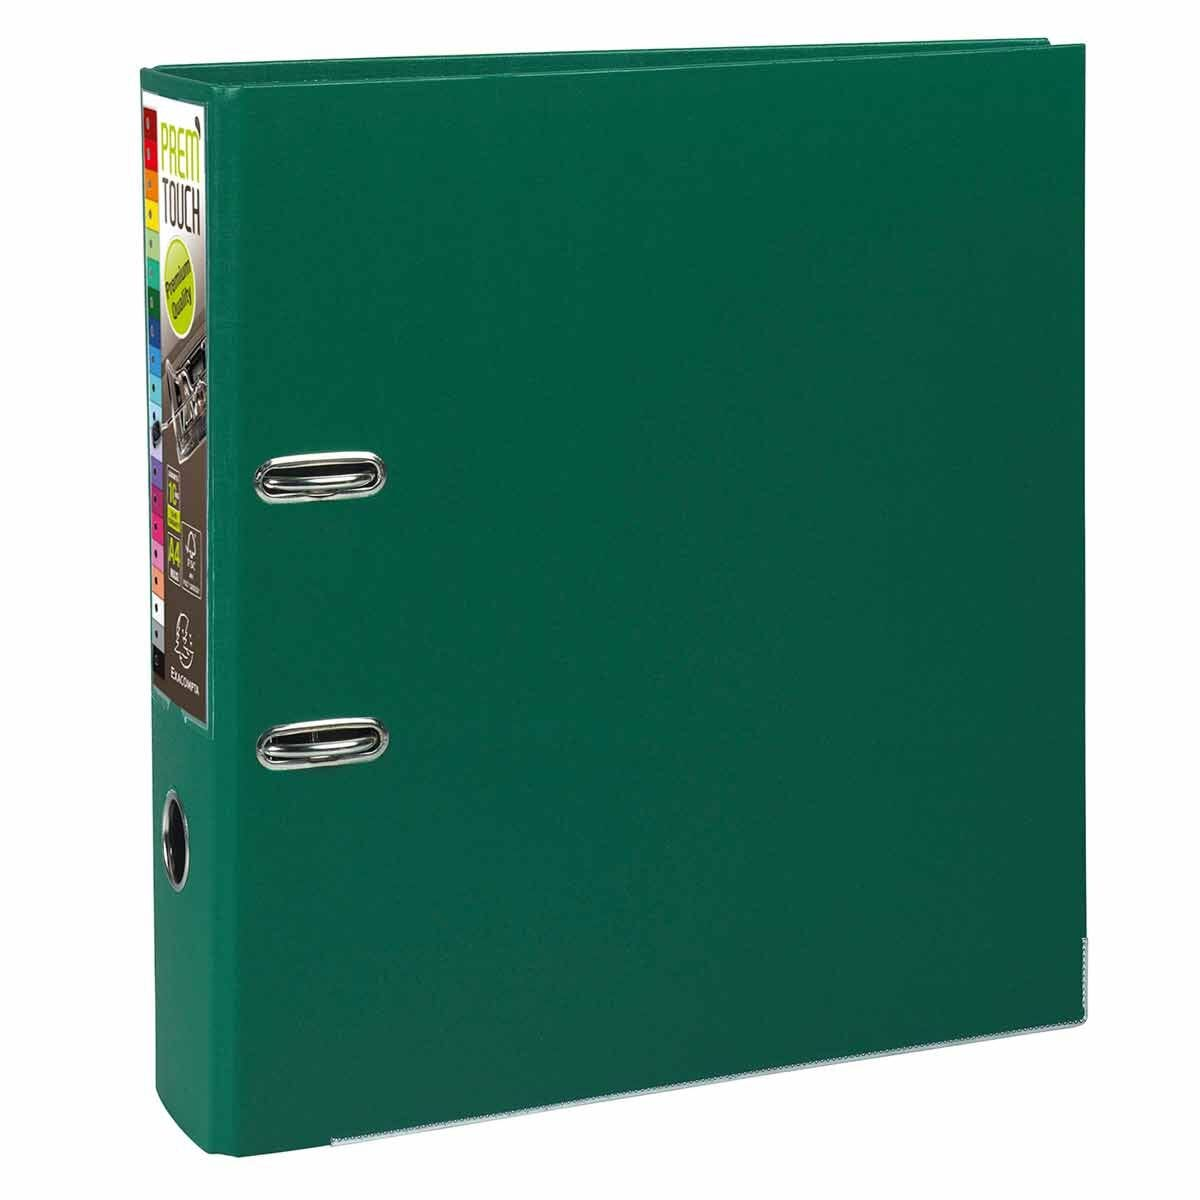 Exacompta PremTouch Lever Arch File A4 Plus PP 80mm Pack of 10 Dark Green